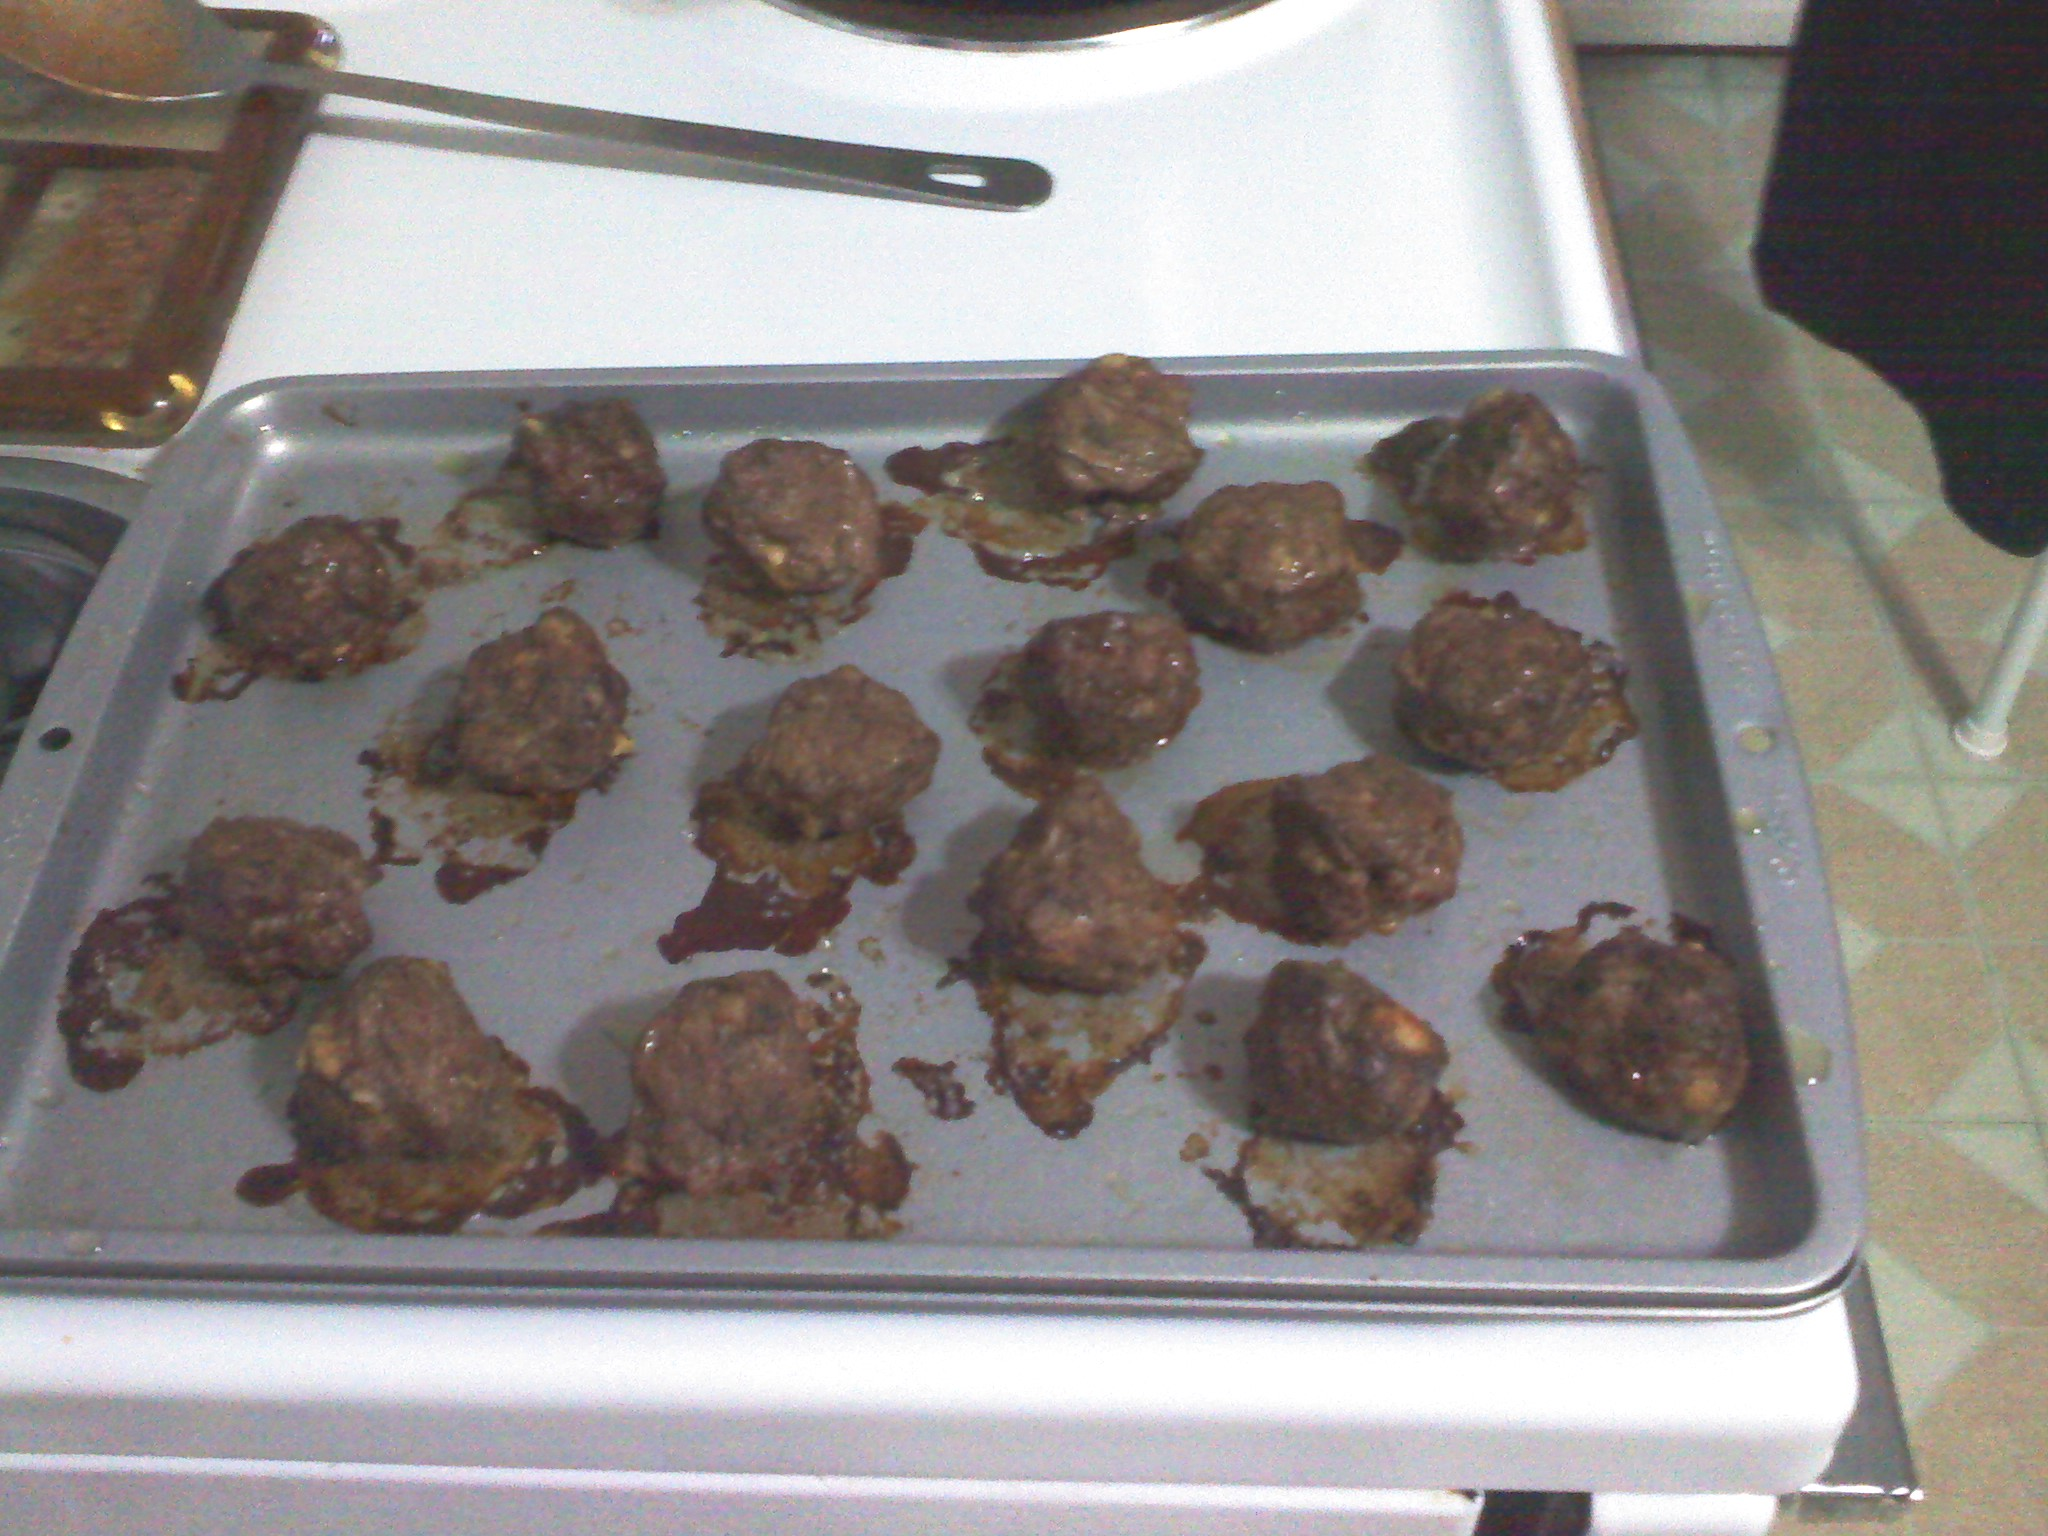 New Britain CT :: my first attempt at home made meatballs, they will be added to my pasta sauce!